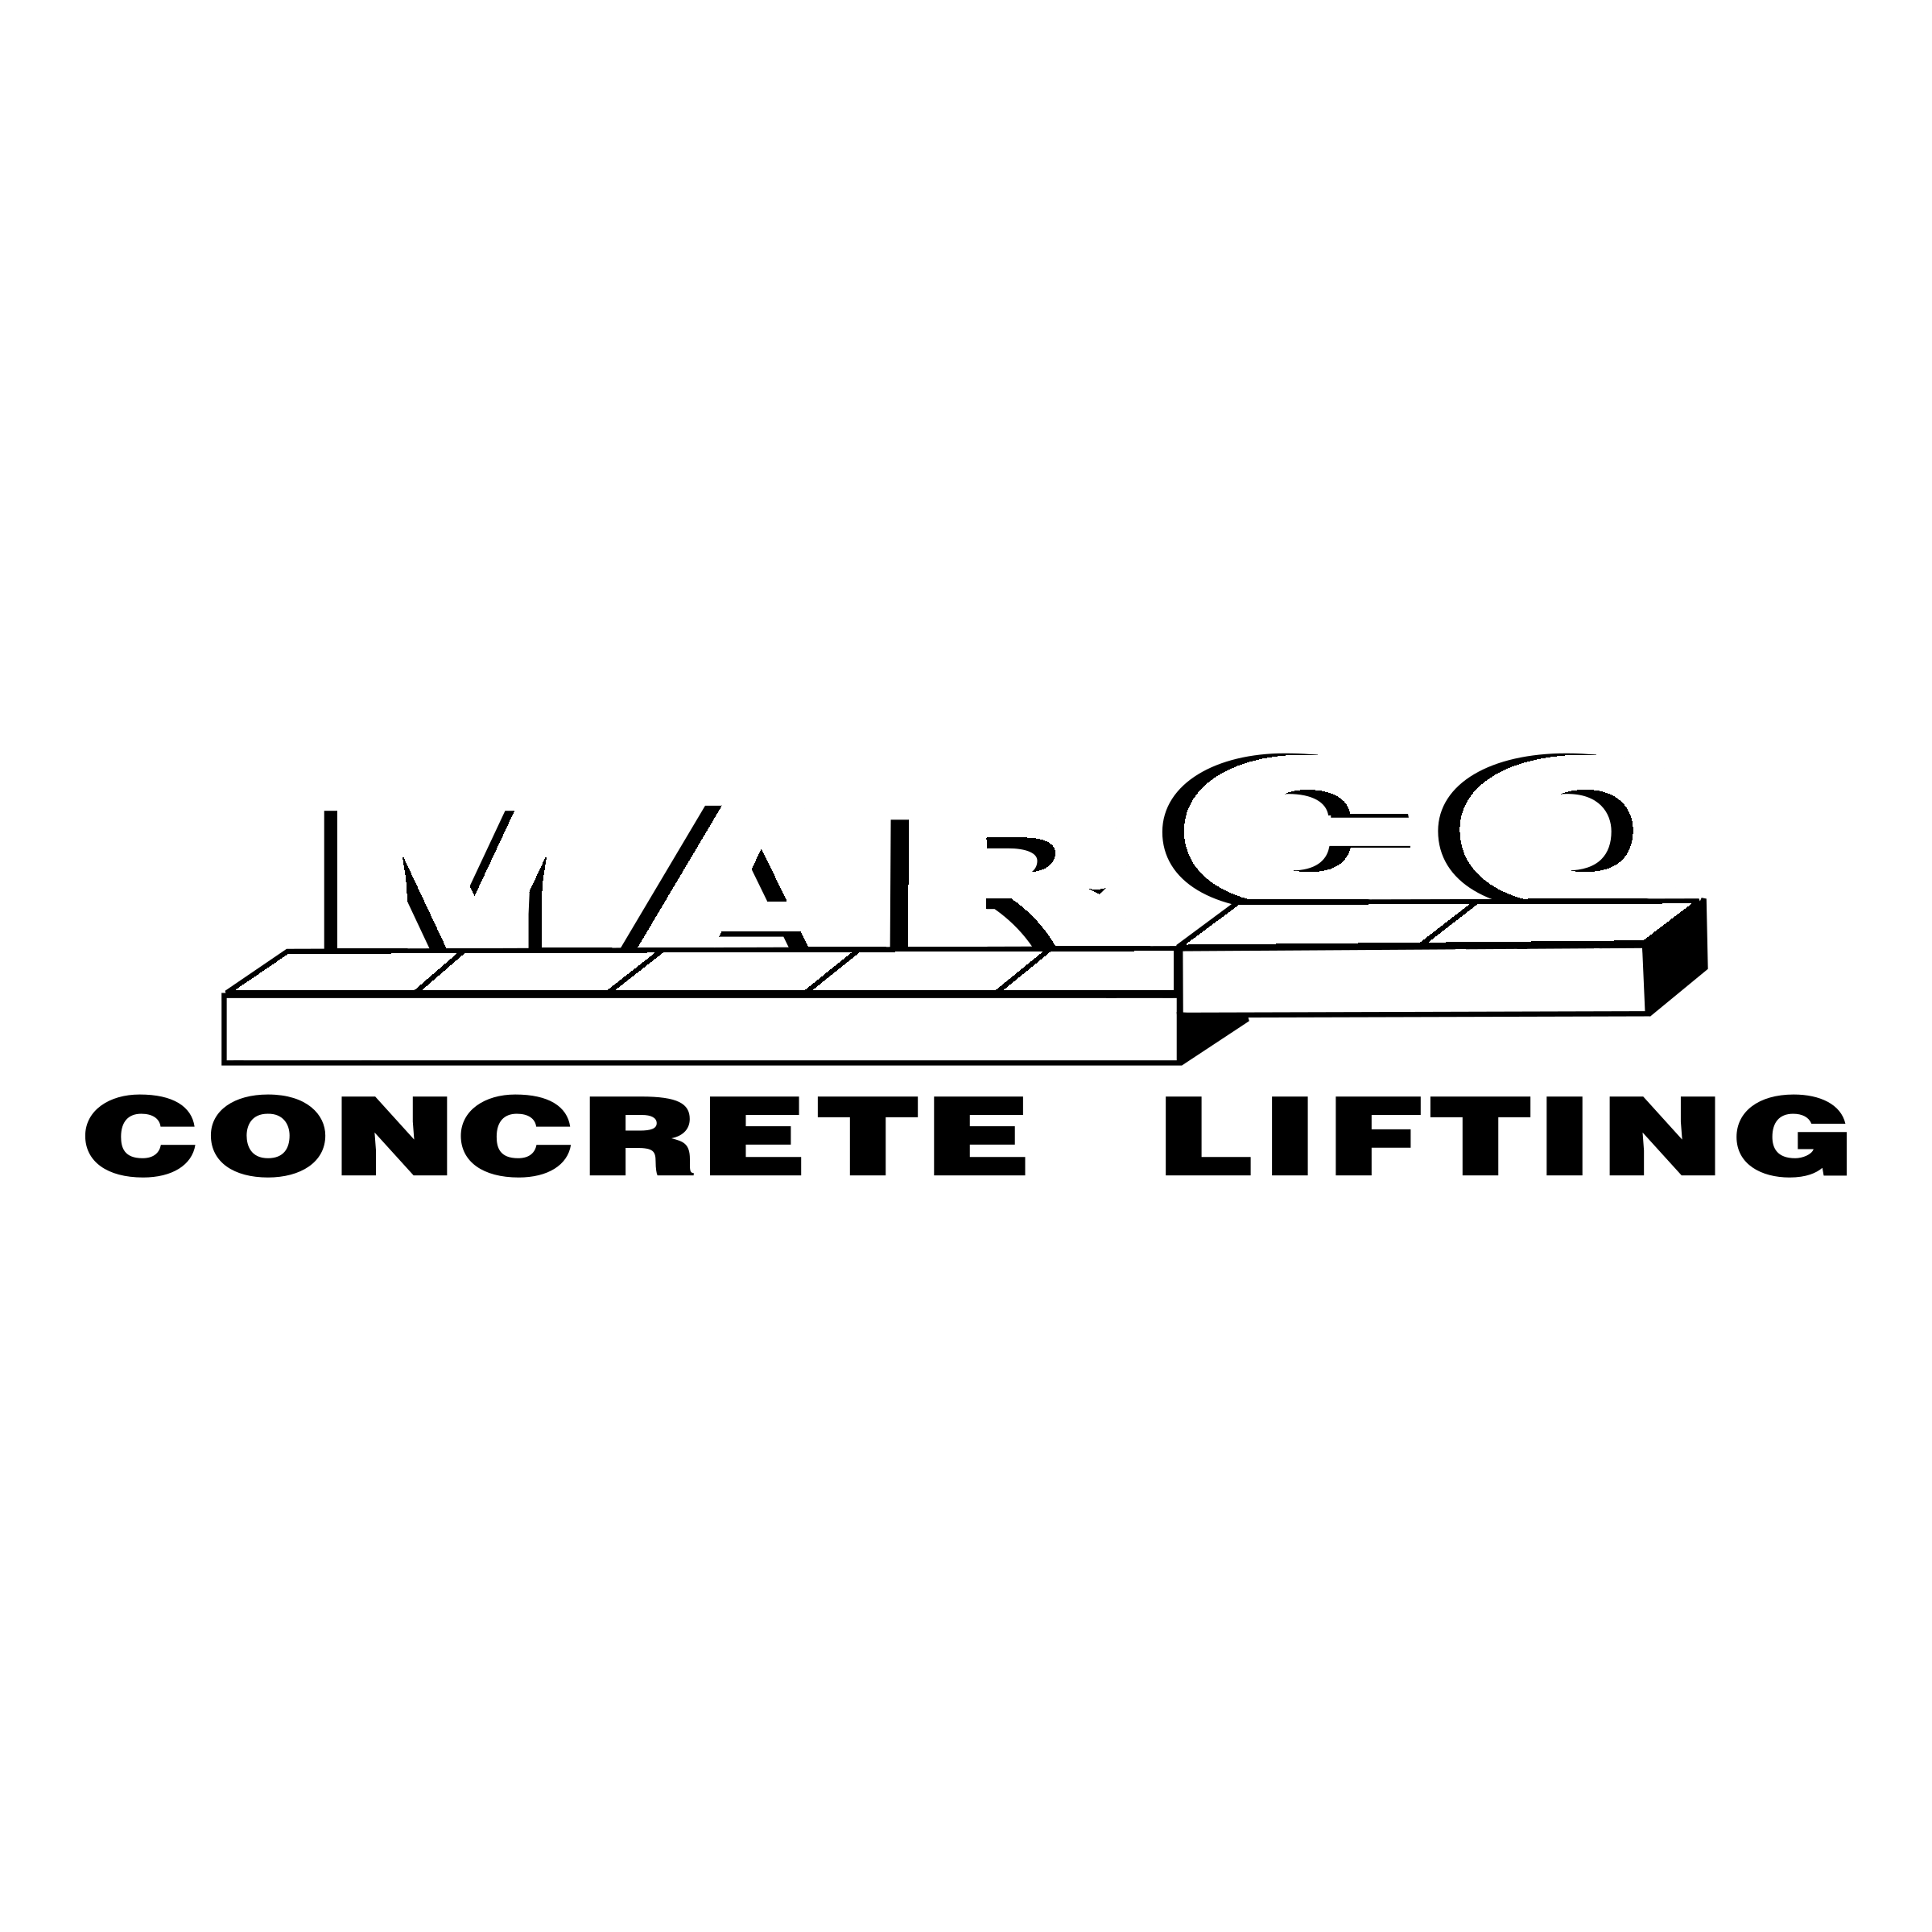 Marco Concrete Logo PNG Transparent & SVG Vector - Freebie Supply